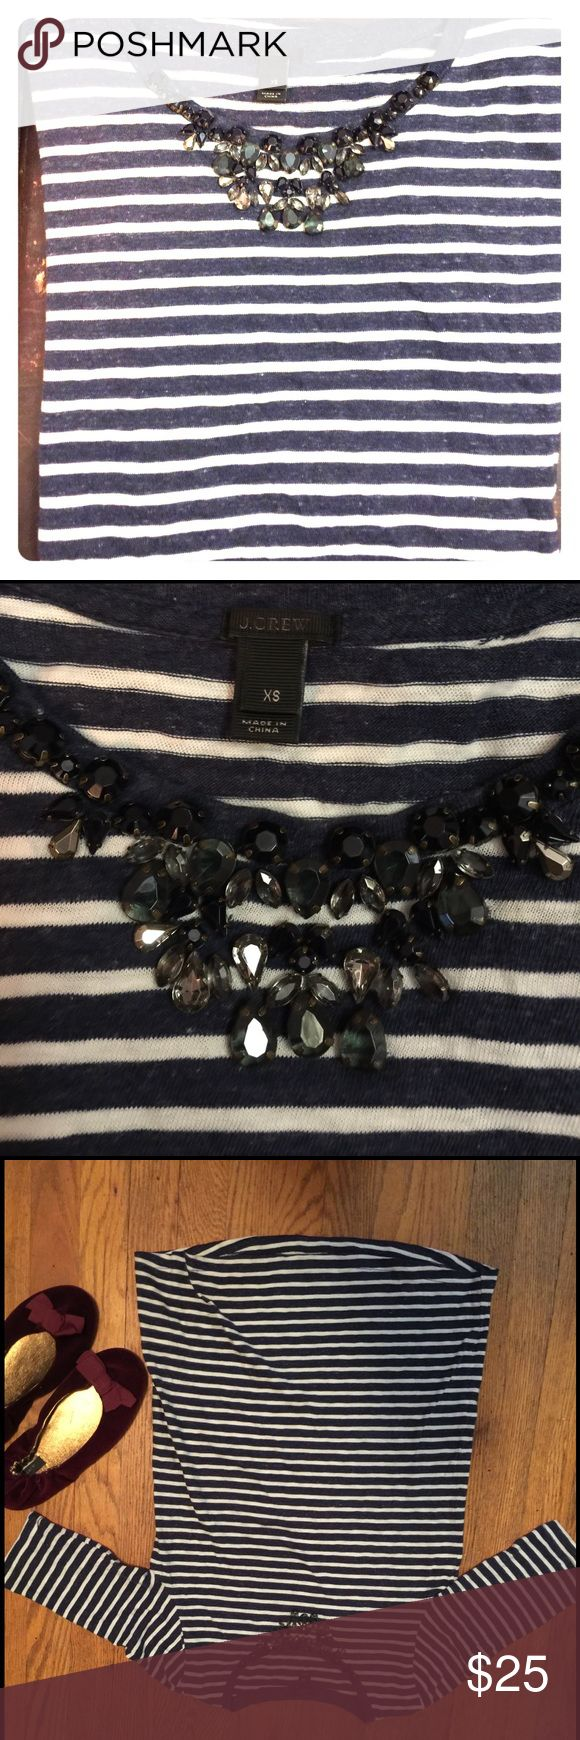 J. Crew top w/ faux jeweled necklace - stripes I ❤️ this top! J. Crew, size XS, 100% cotton. Navy & white stripes - has a nautical vibe, but with pretty faux necklace/beading around the neckline. Very soft and perfect for a day out! Pair with white jeans and ballet flats for a comfy/casual look! J. Crew Tops Blouses